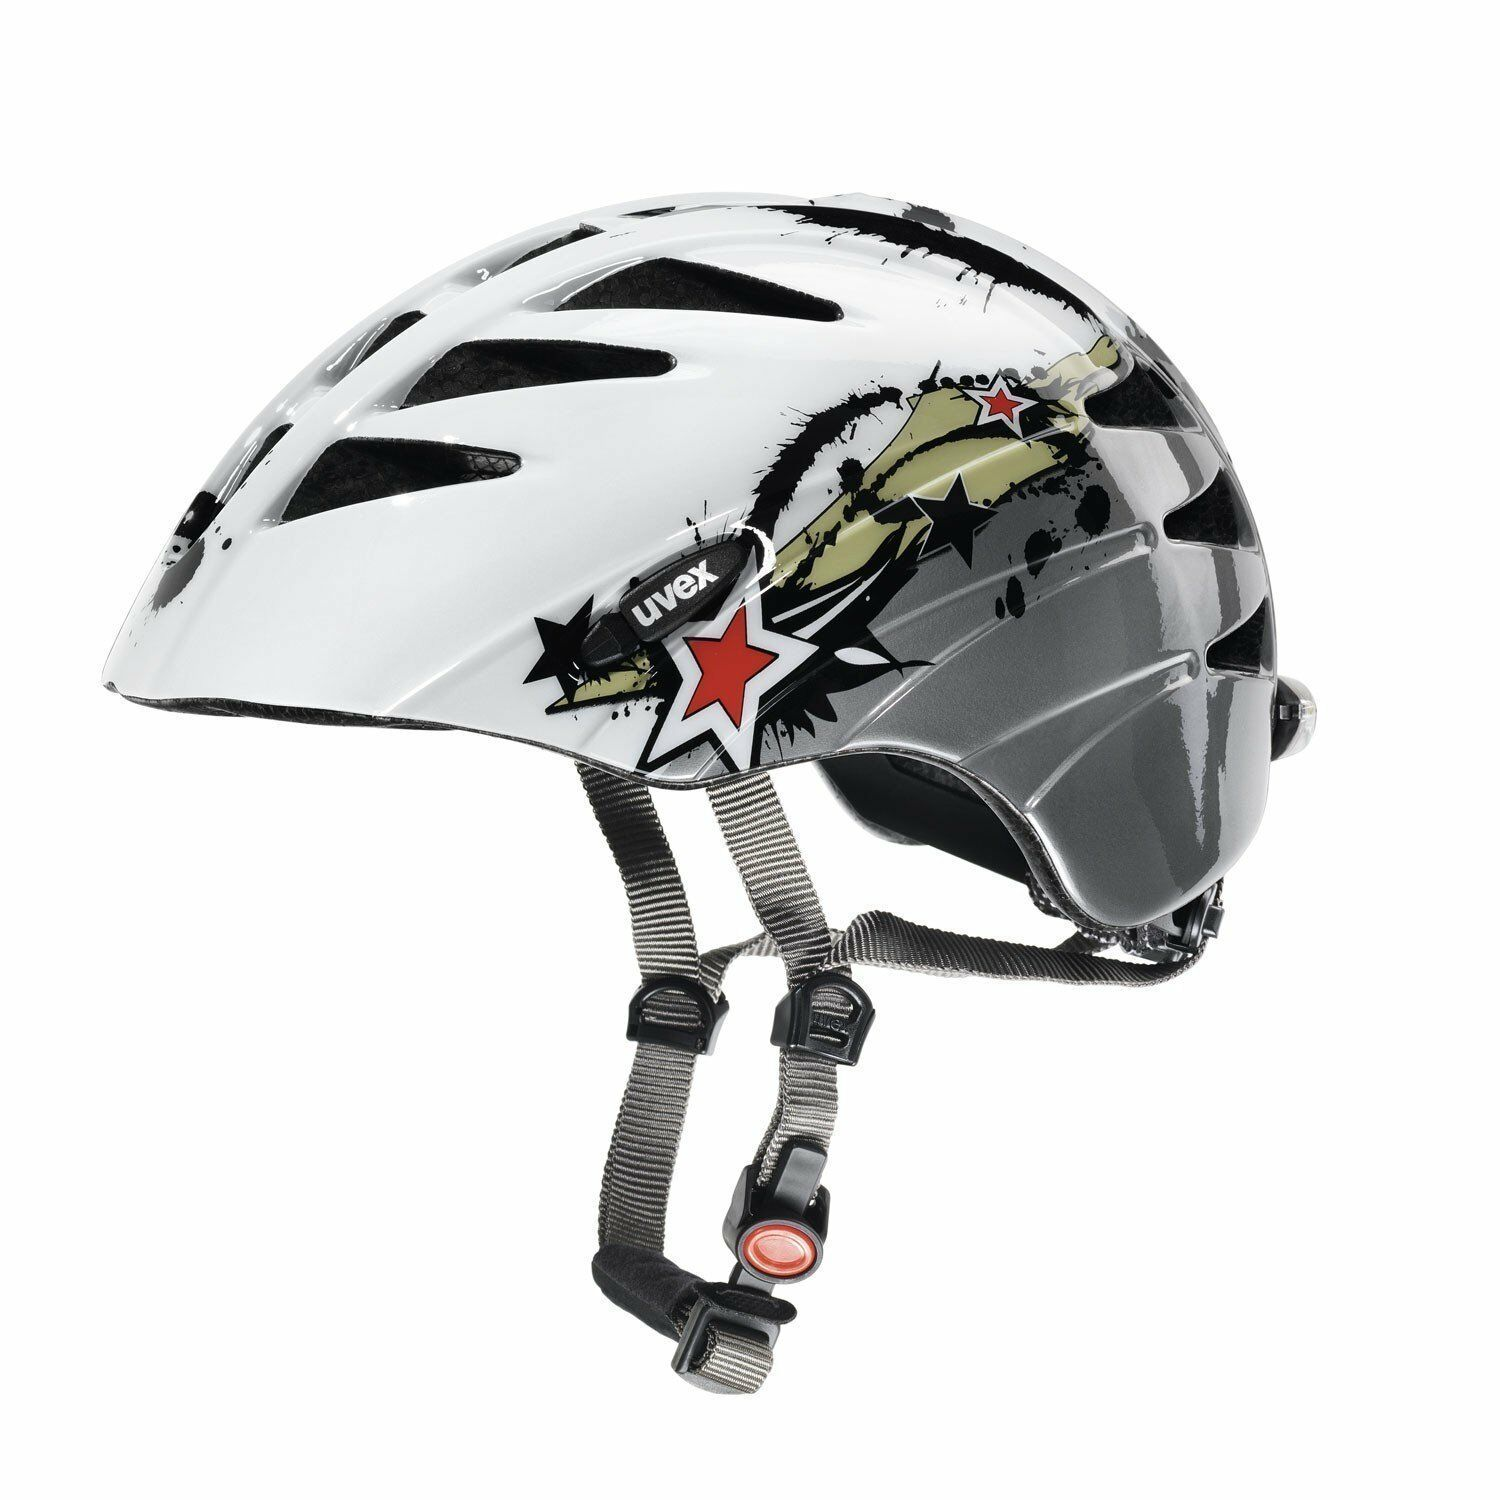 Uvex Junior Splash Casco per bicicletta ERL 52-57 cm - NUOVO